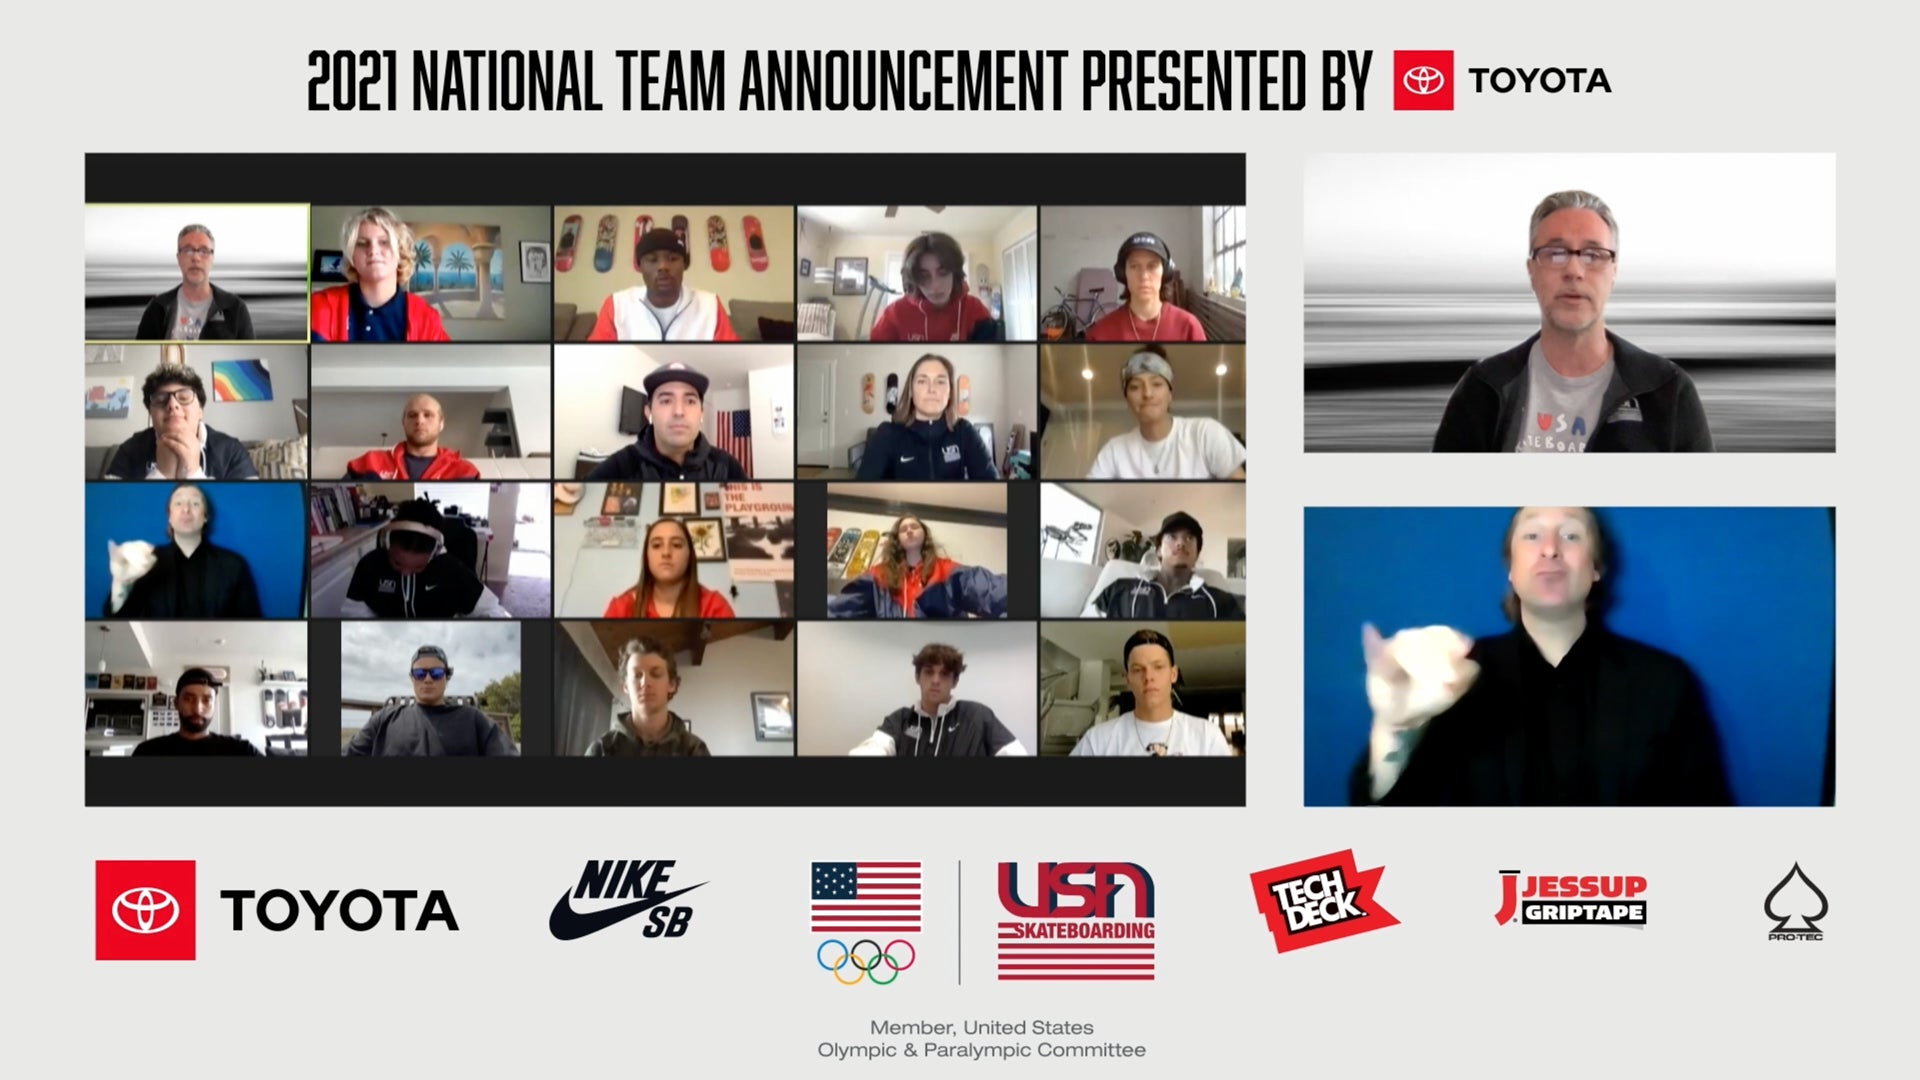 Toyota USA Skateboarding Virtual Event Announces 2021 National Team